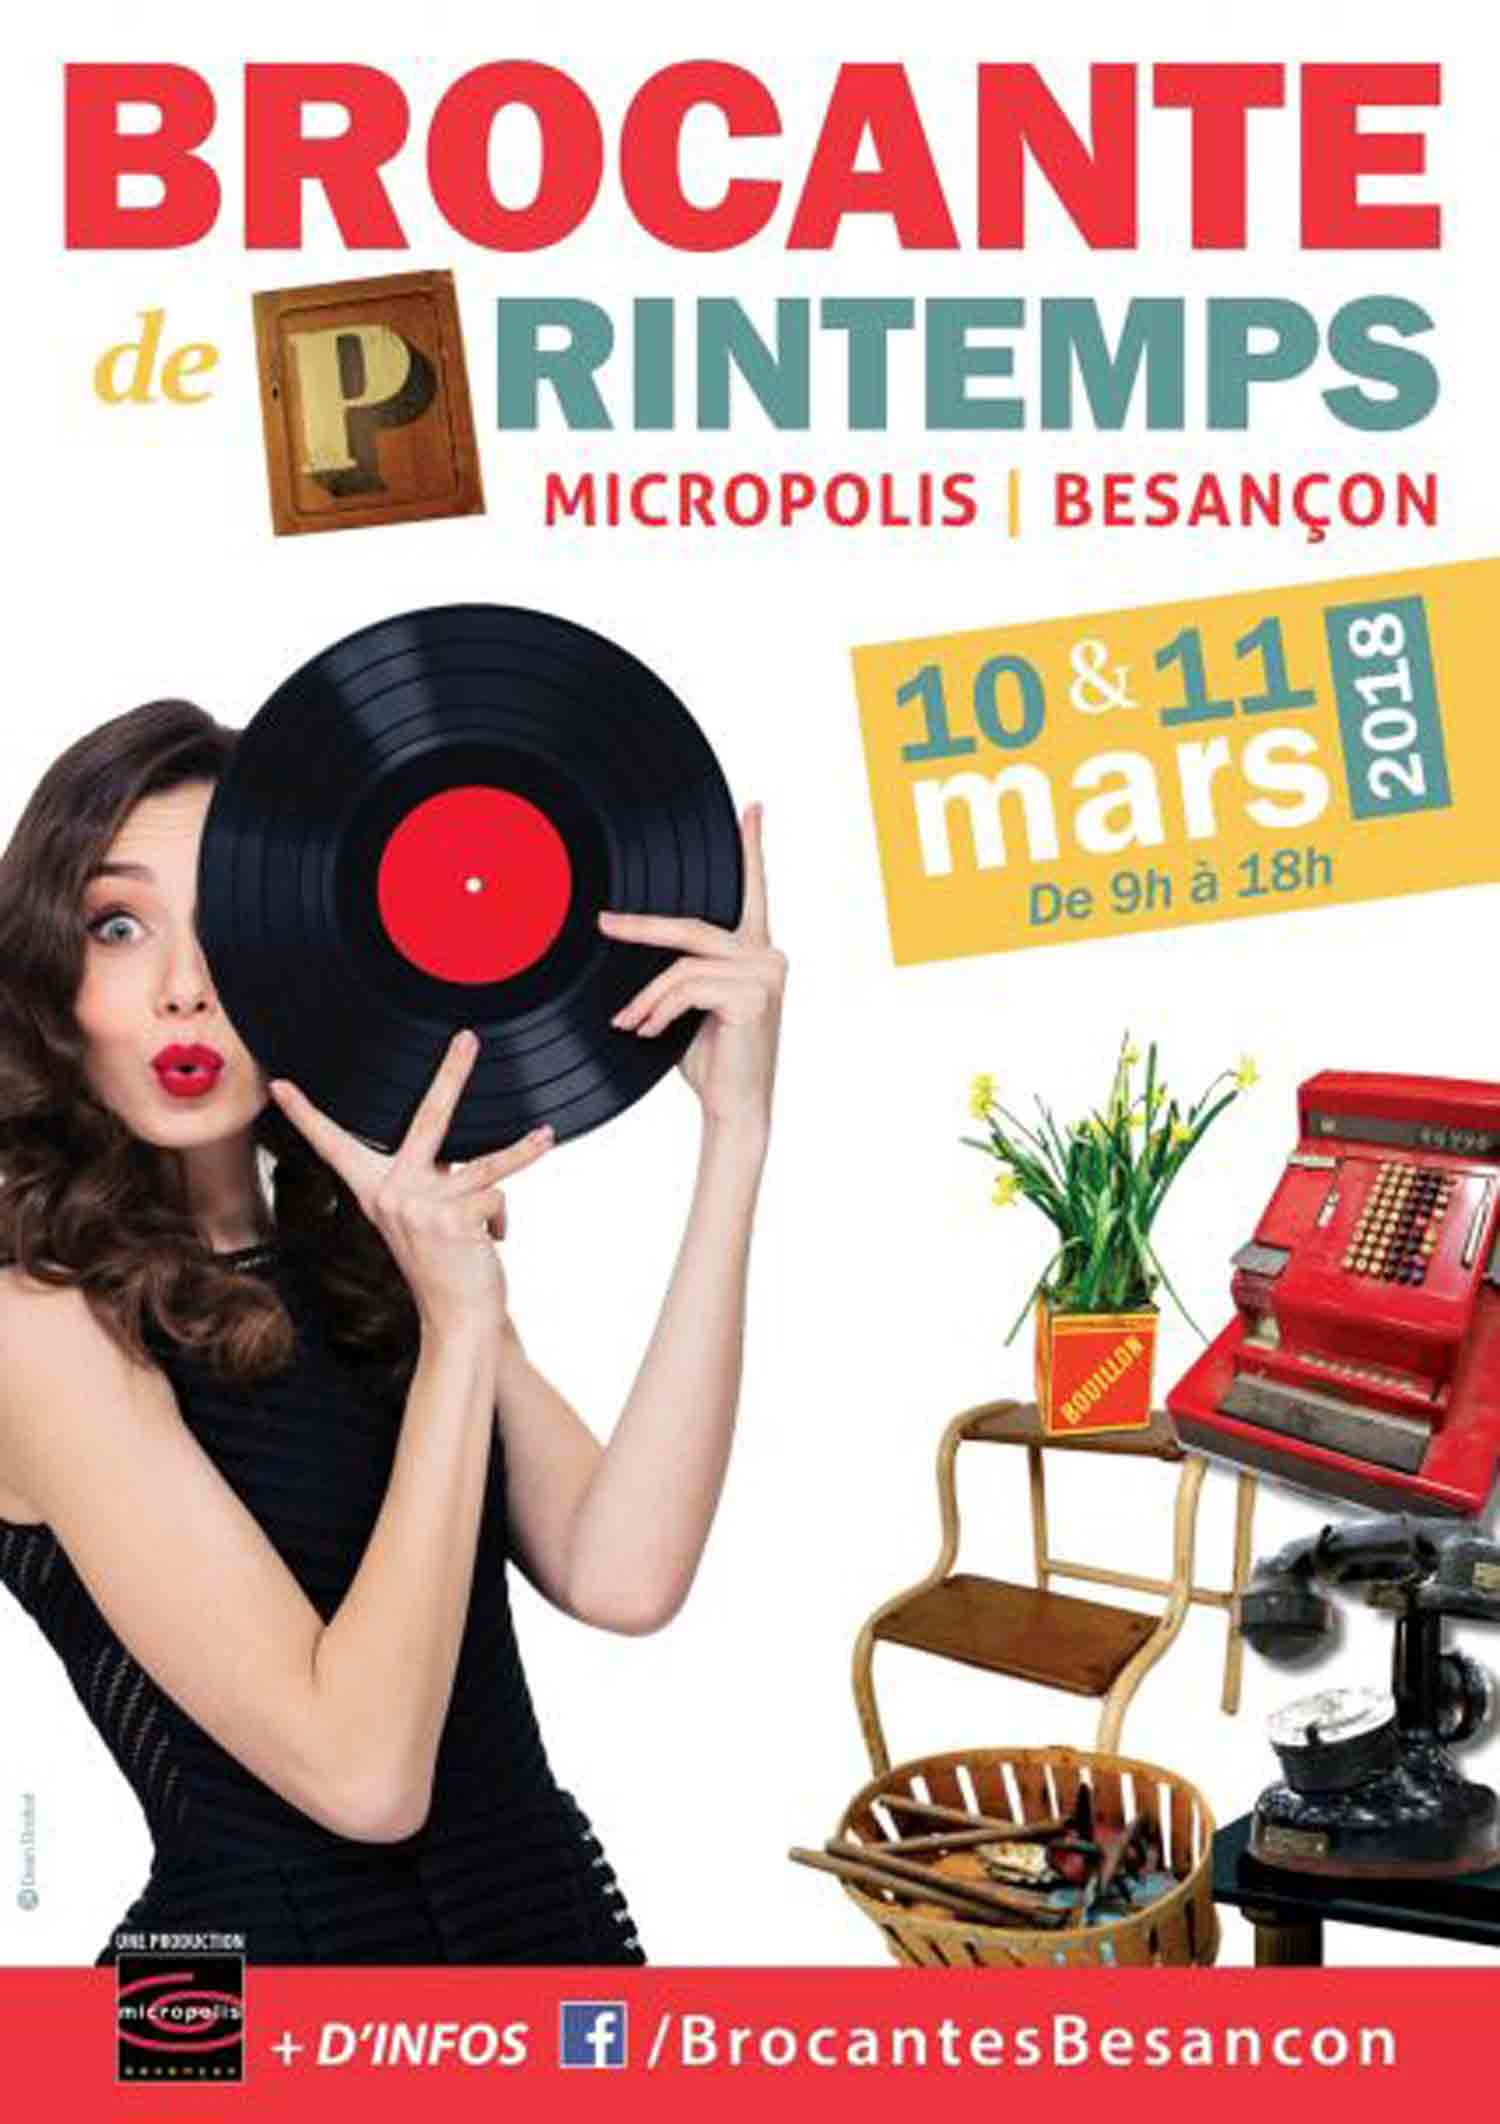 brocante de printemps besan on micropolis bourses vide greniers doubs. Black Bedroom Furniture Sets. Home Design Ideas